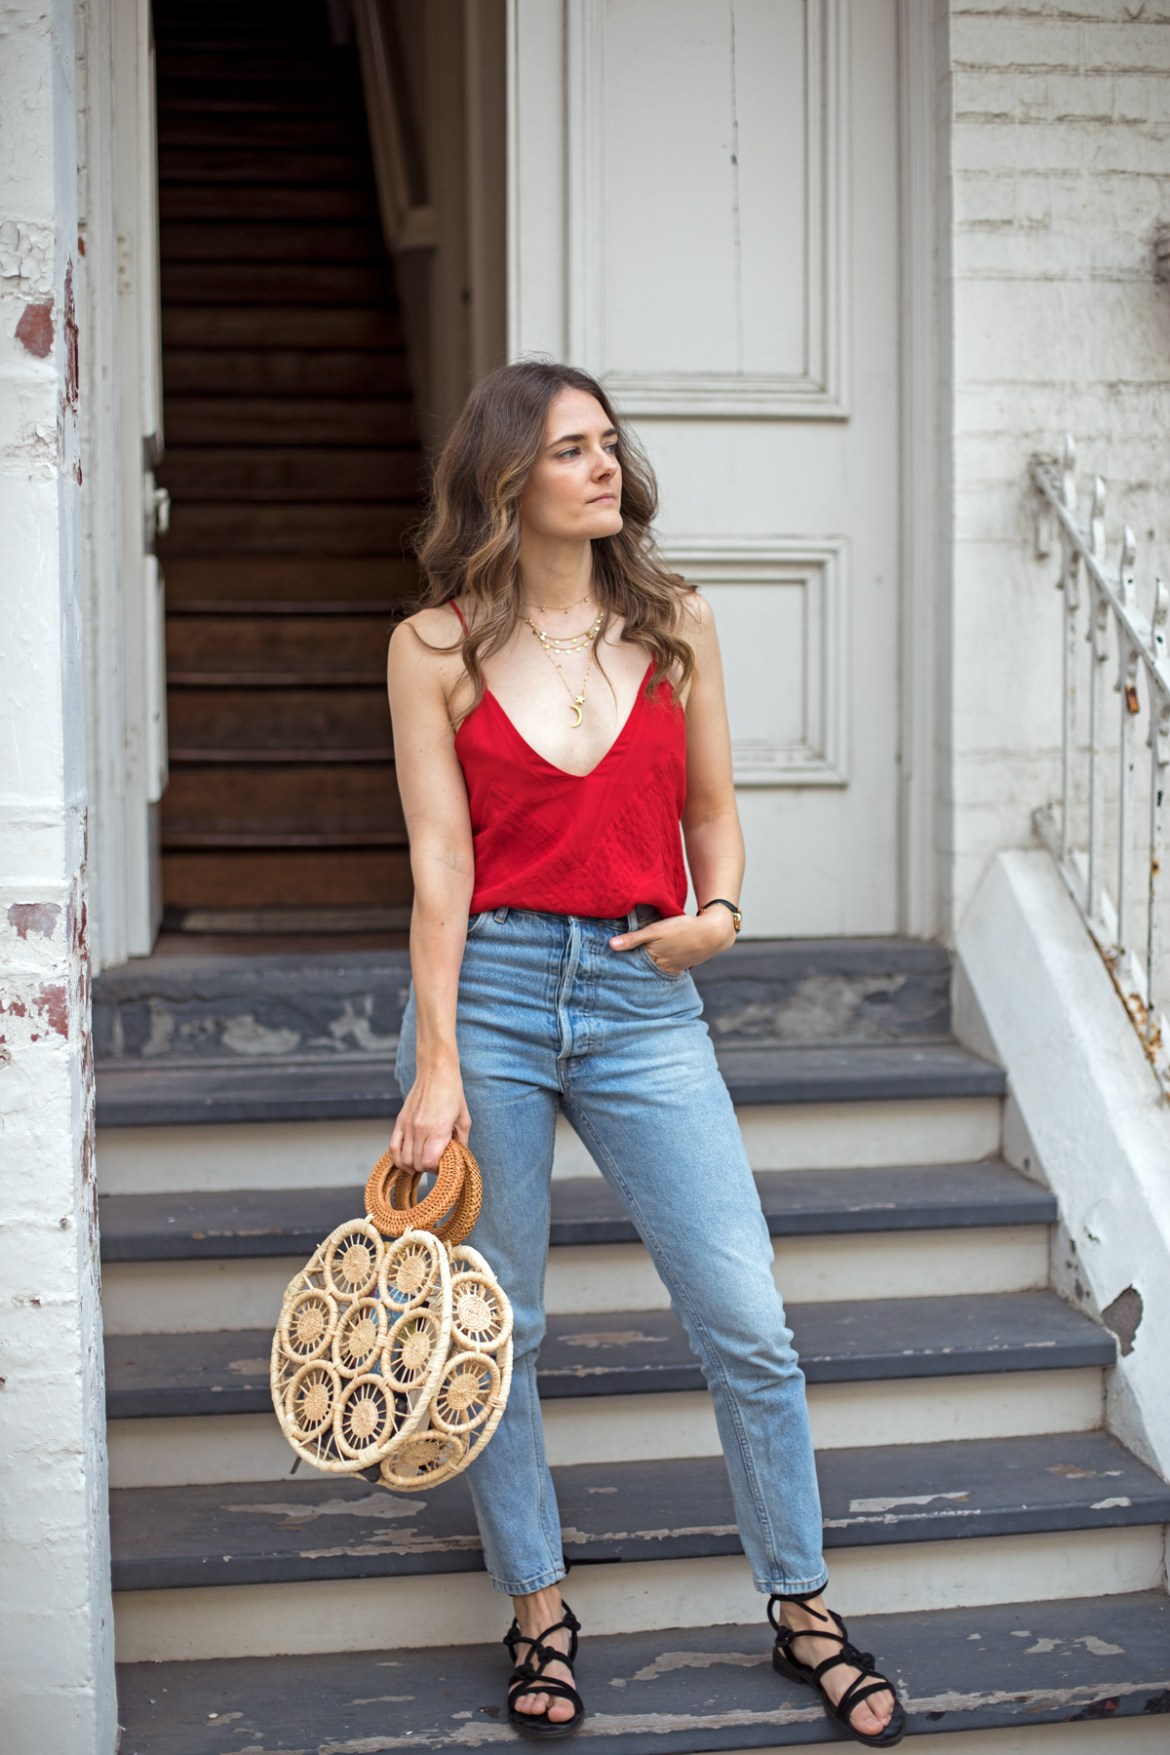 Anine Bing Sophie pintucked crepe de chine camisole in red worn with gold necklaces layered, Mavi mom jeans and Cult Gaia round straw bag by fashion blogger Jenelle Witty from Inspiring Wit